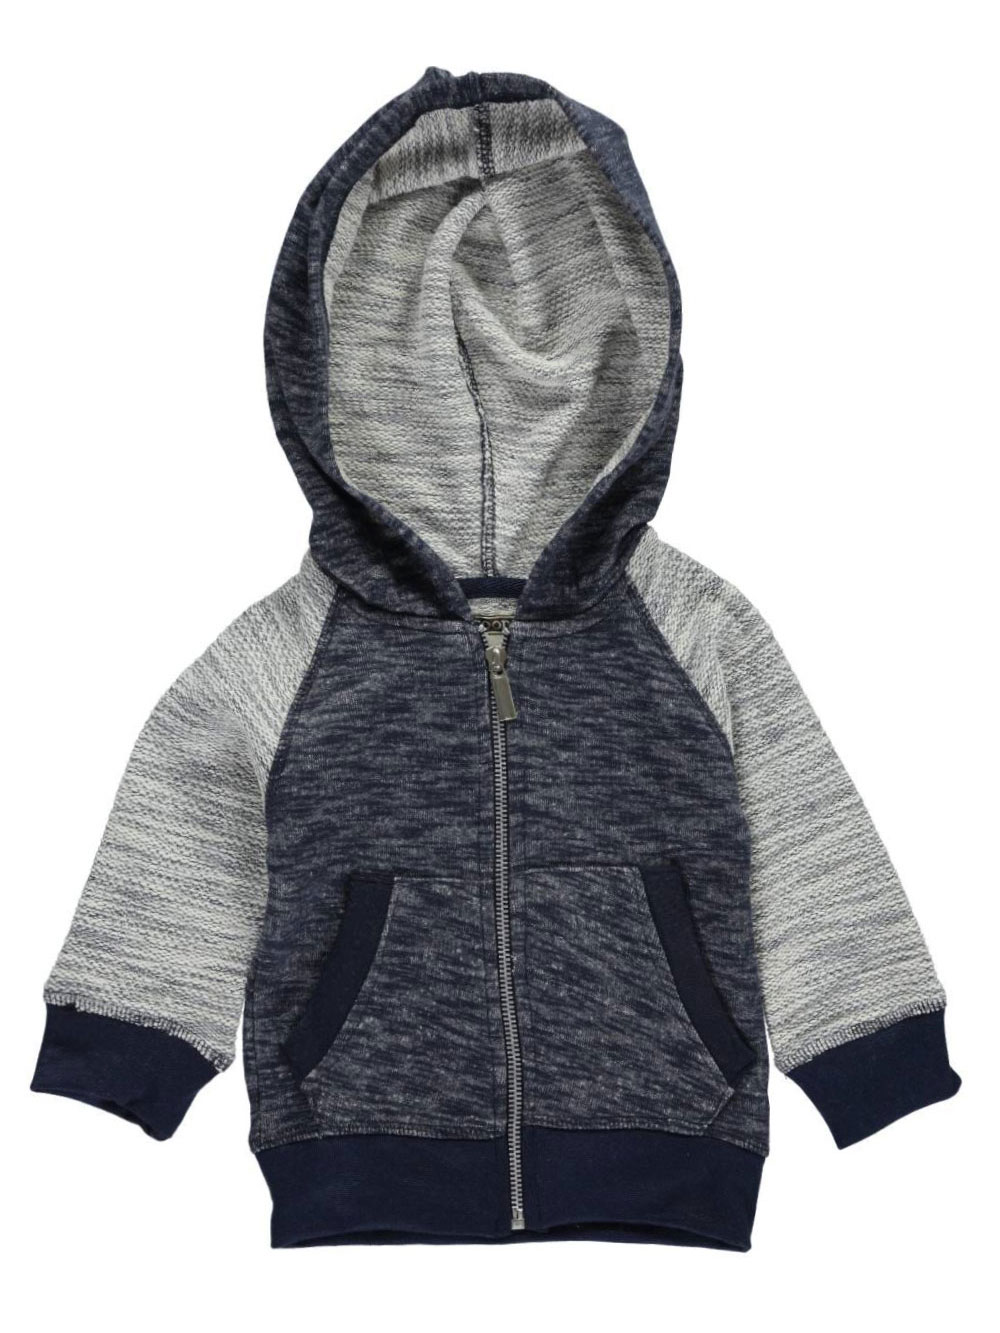 Image of Faze 1 Baby Boys Inside Out Hoodie  navy 24 months